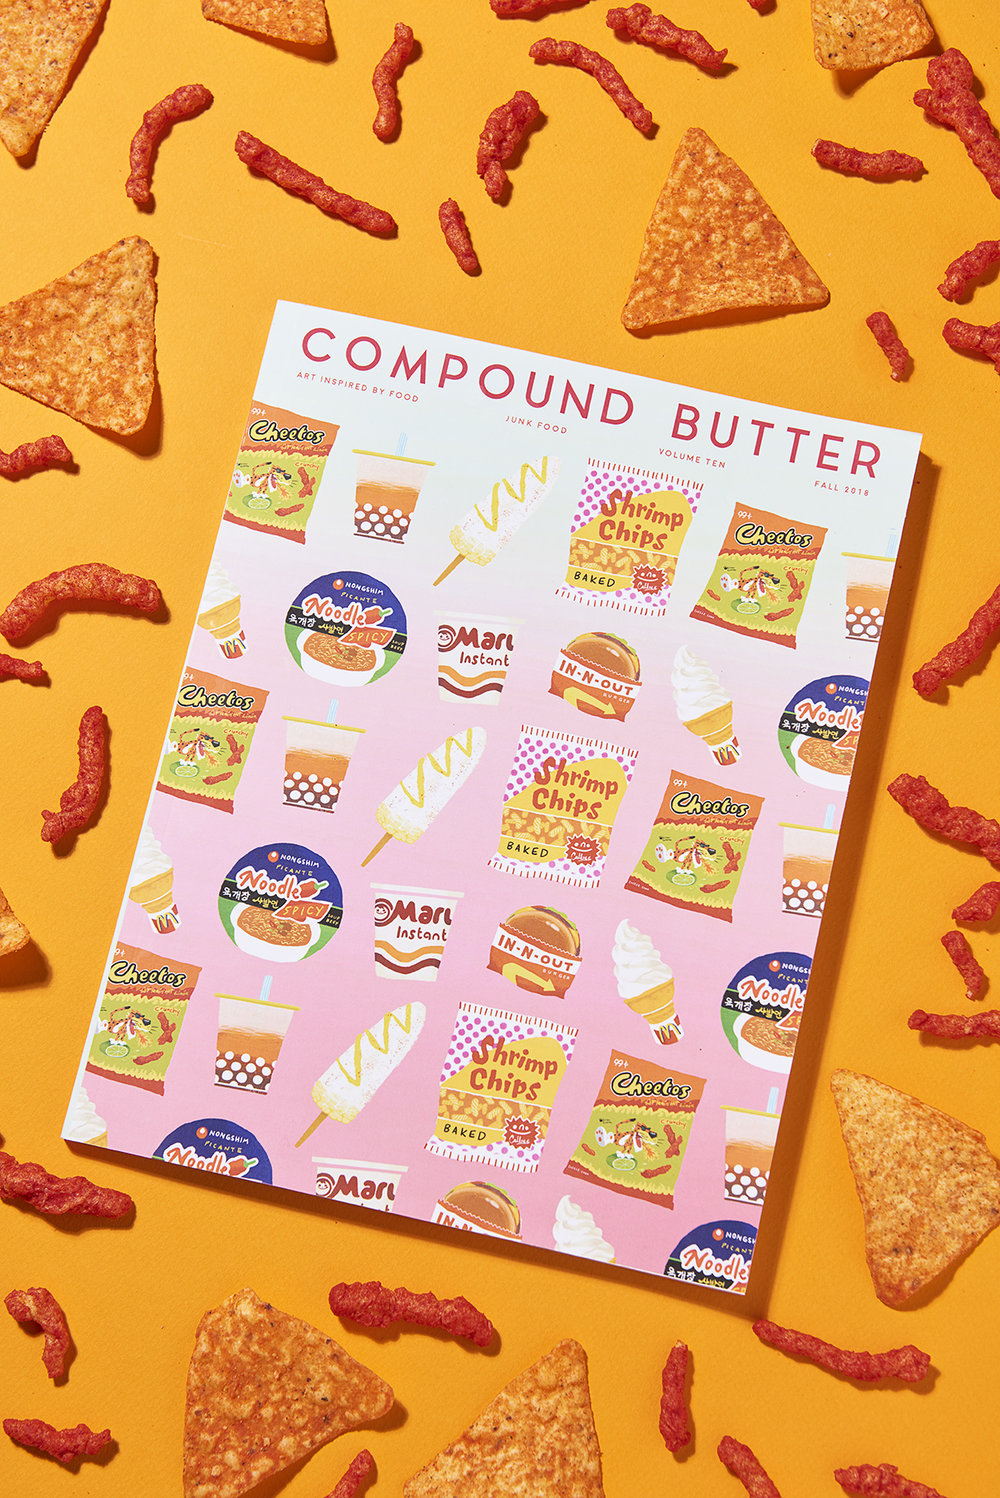 Compund Butter - Junk Food - Snacks.jpg